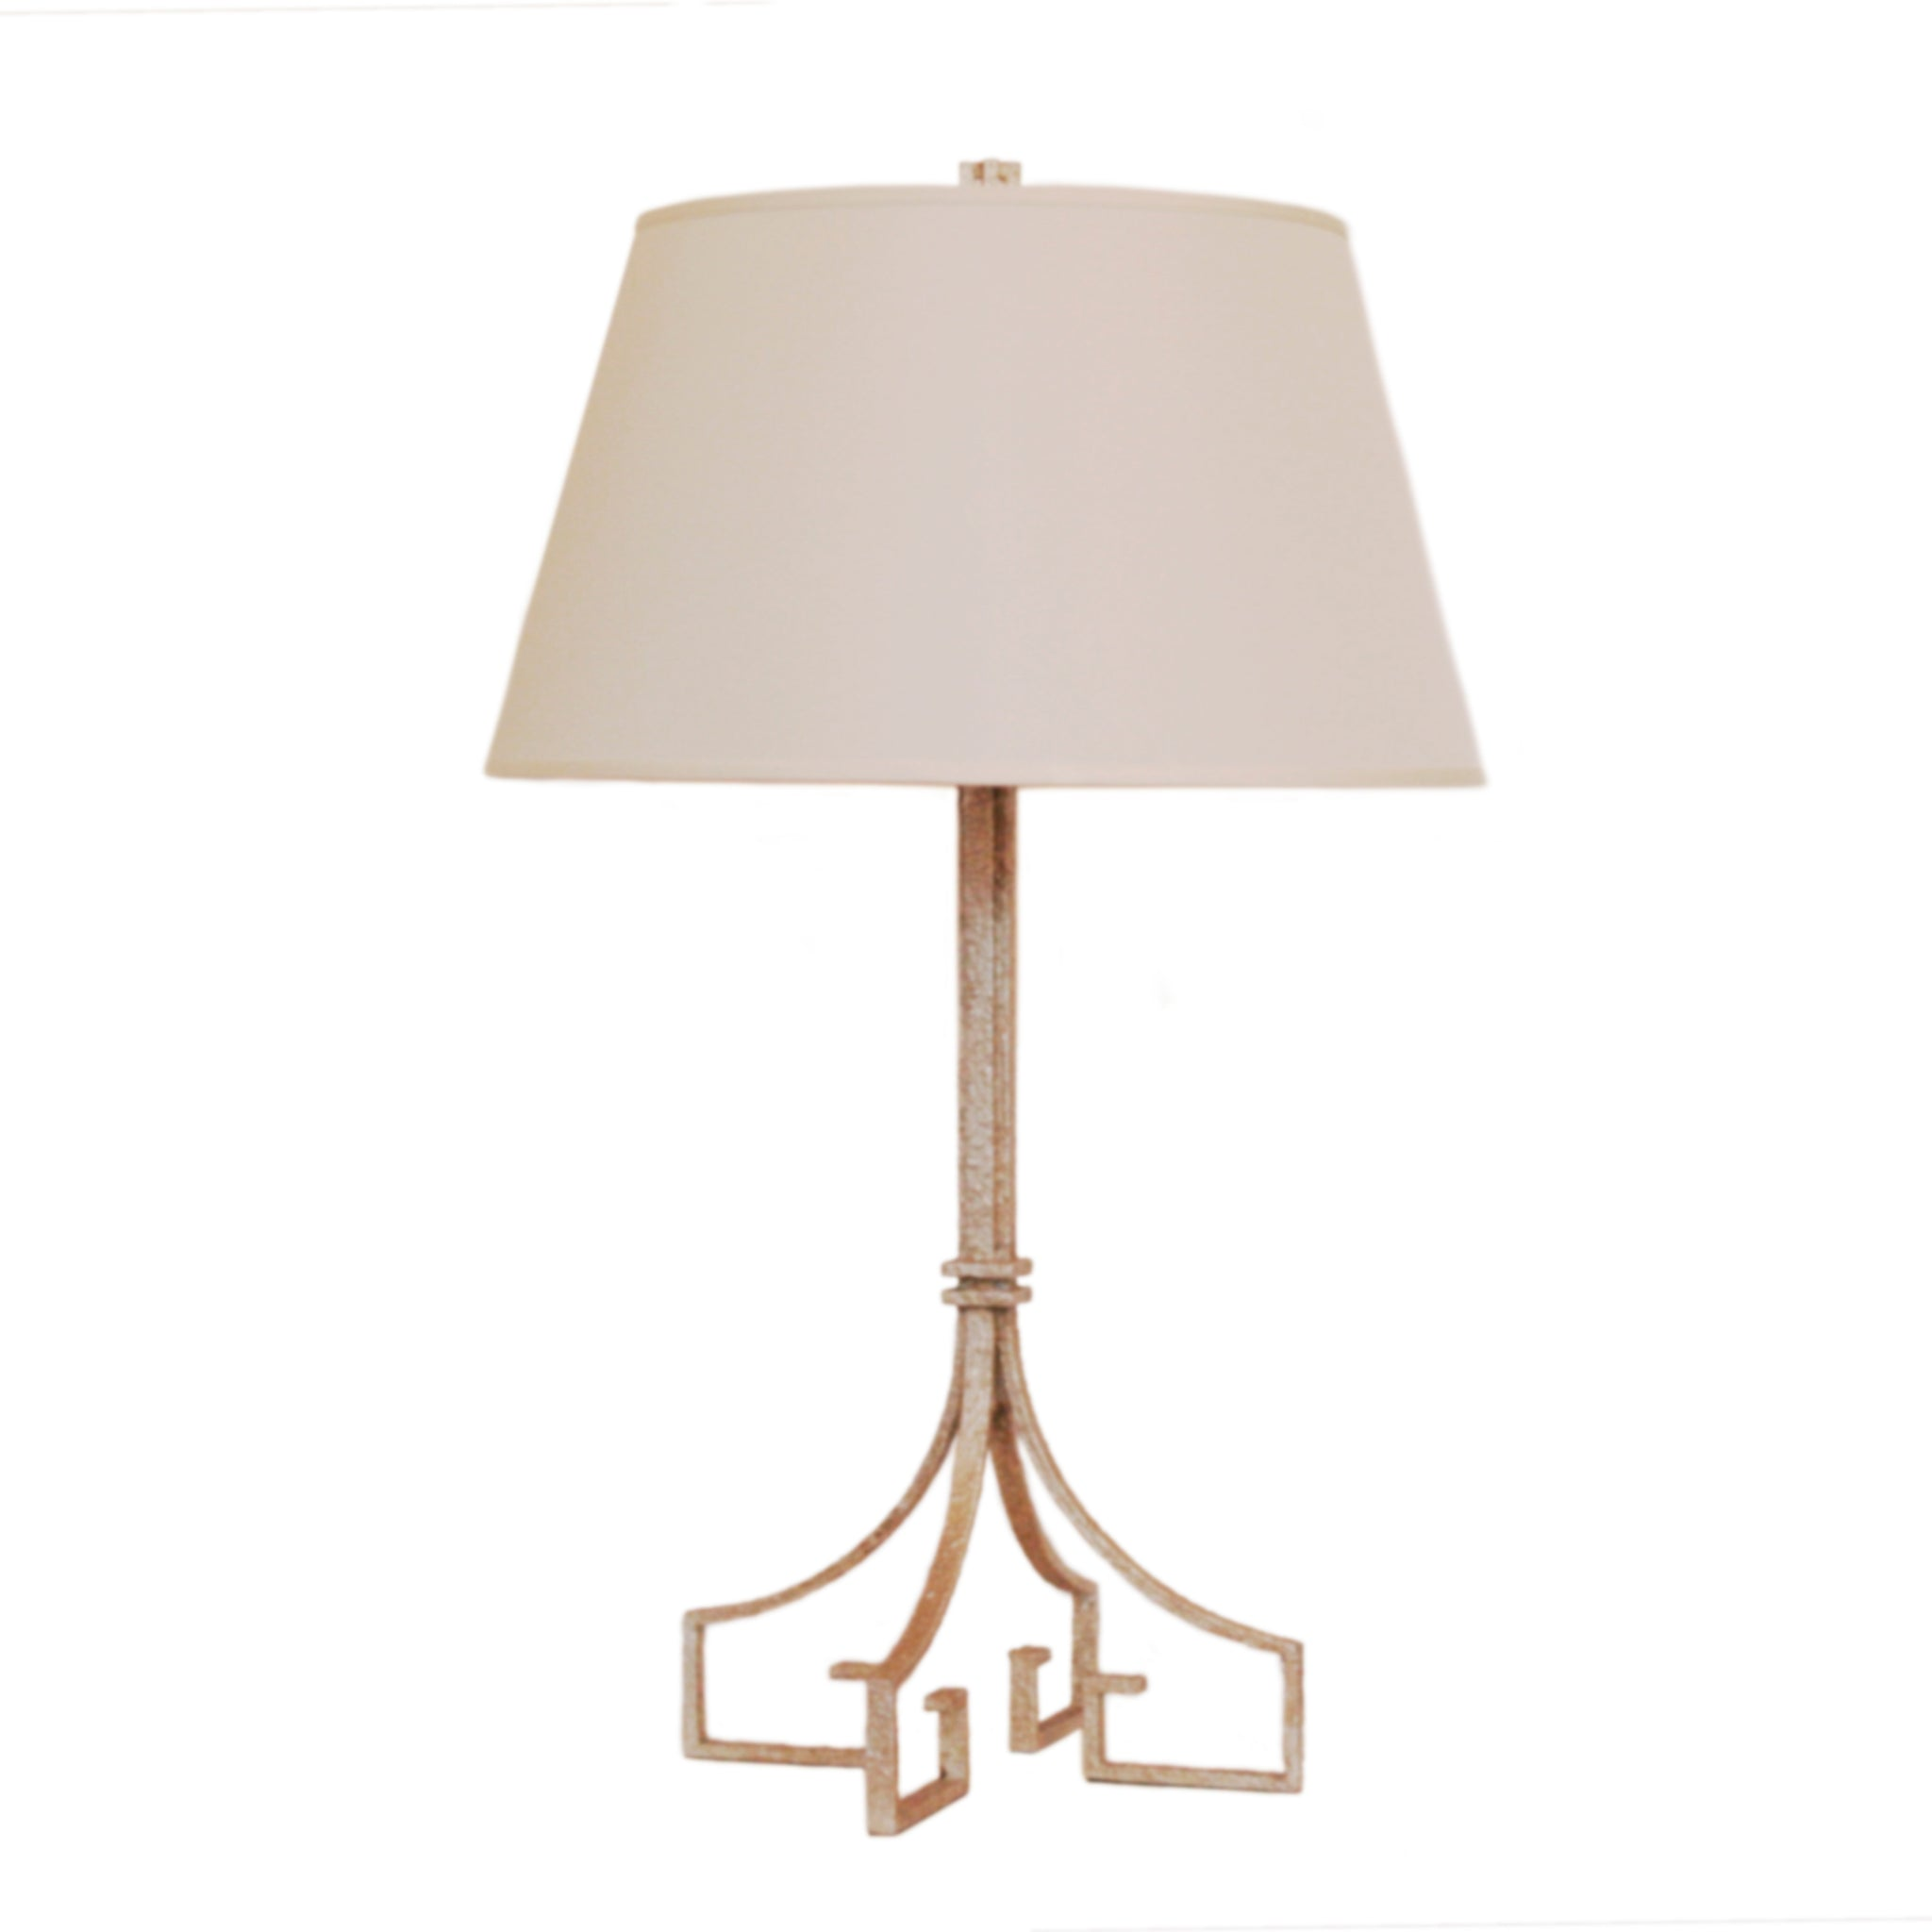 Rhodes Table Lamp by Niermann Weeks for Visual Comfort & Co. in Venetian Silver with Silk Shade